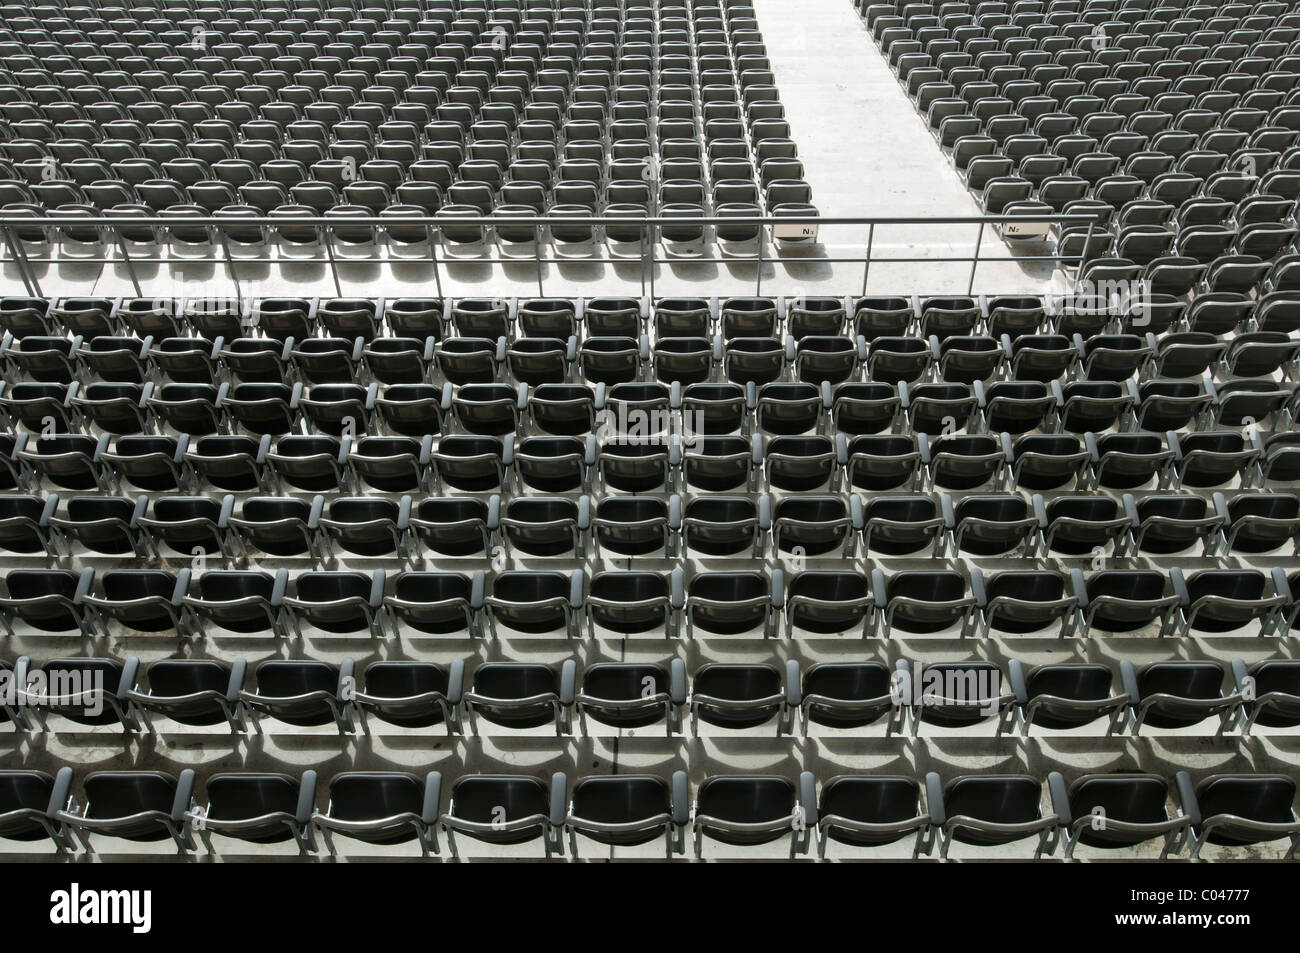 rows of empty stadium seats olympic stadium berlin germany stock photo royalty free image. Black Bedroom Furniture Sets. Home Design Ideas